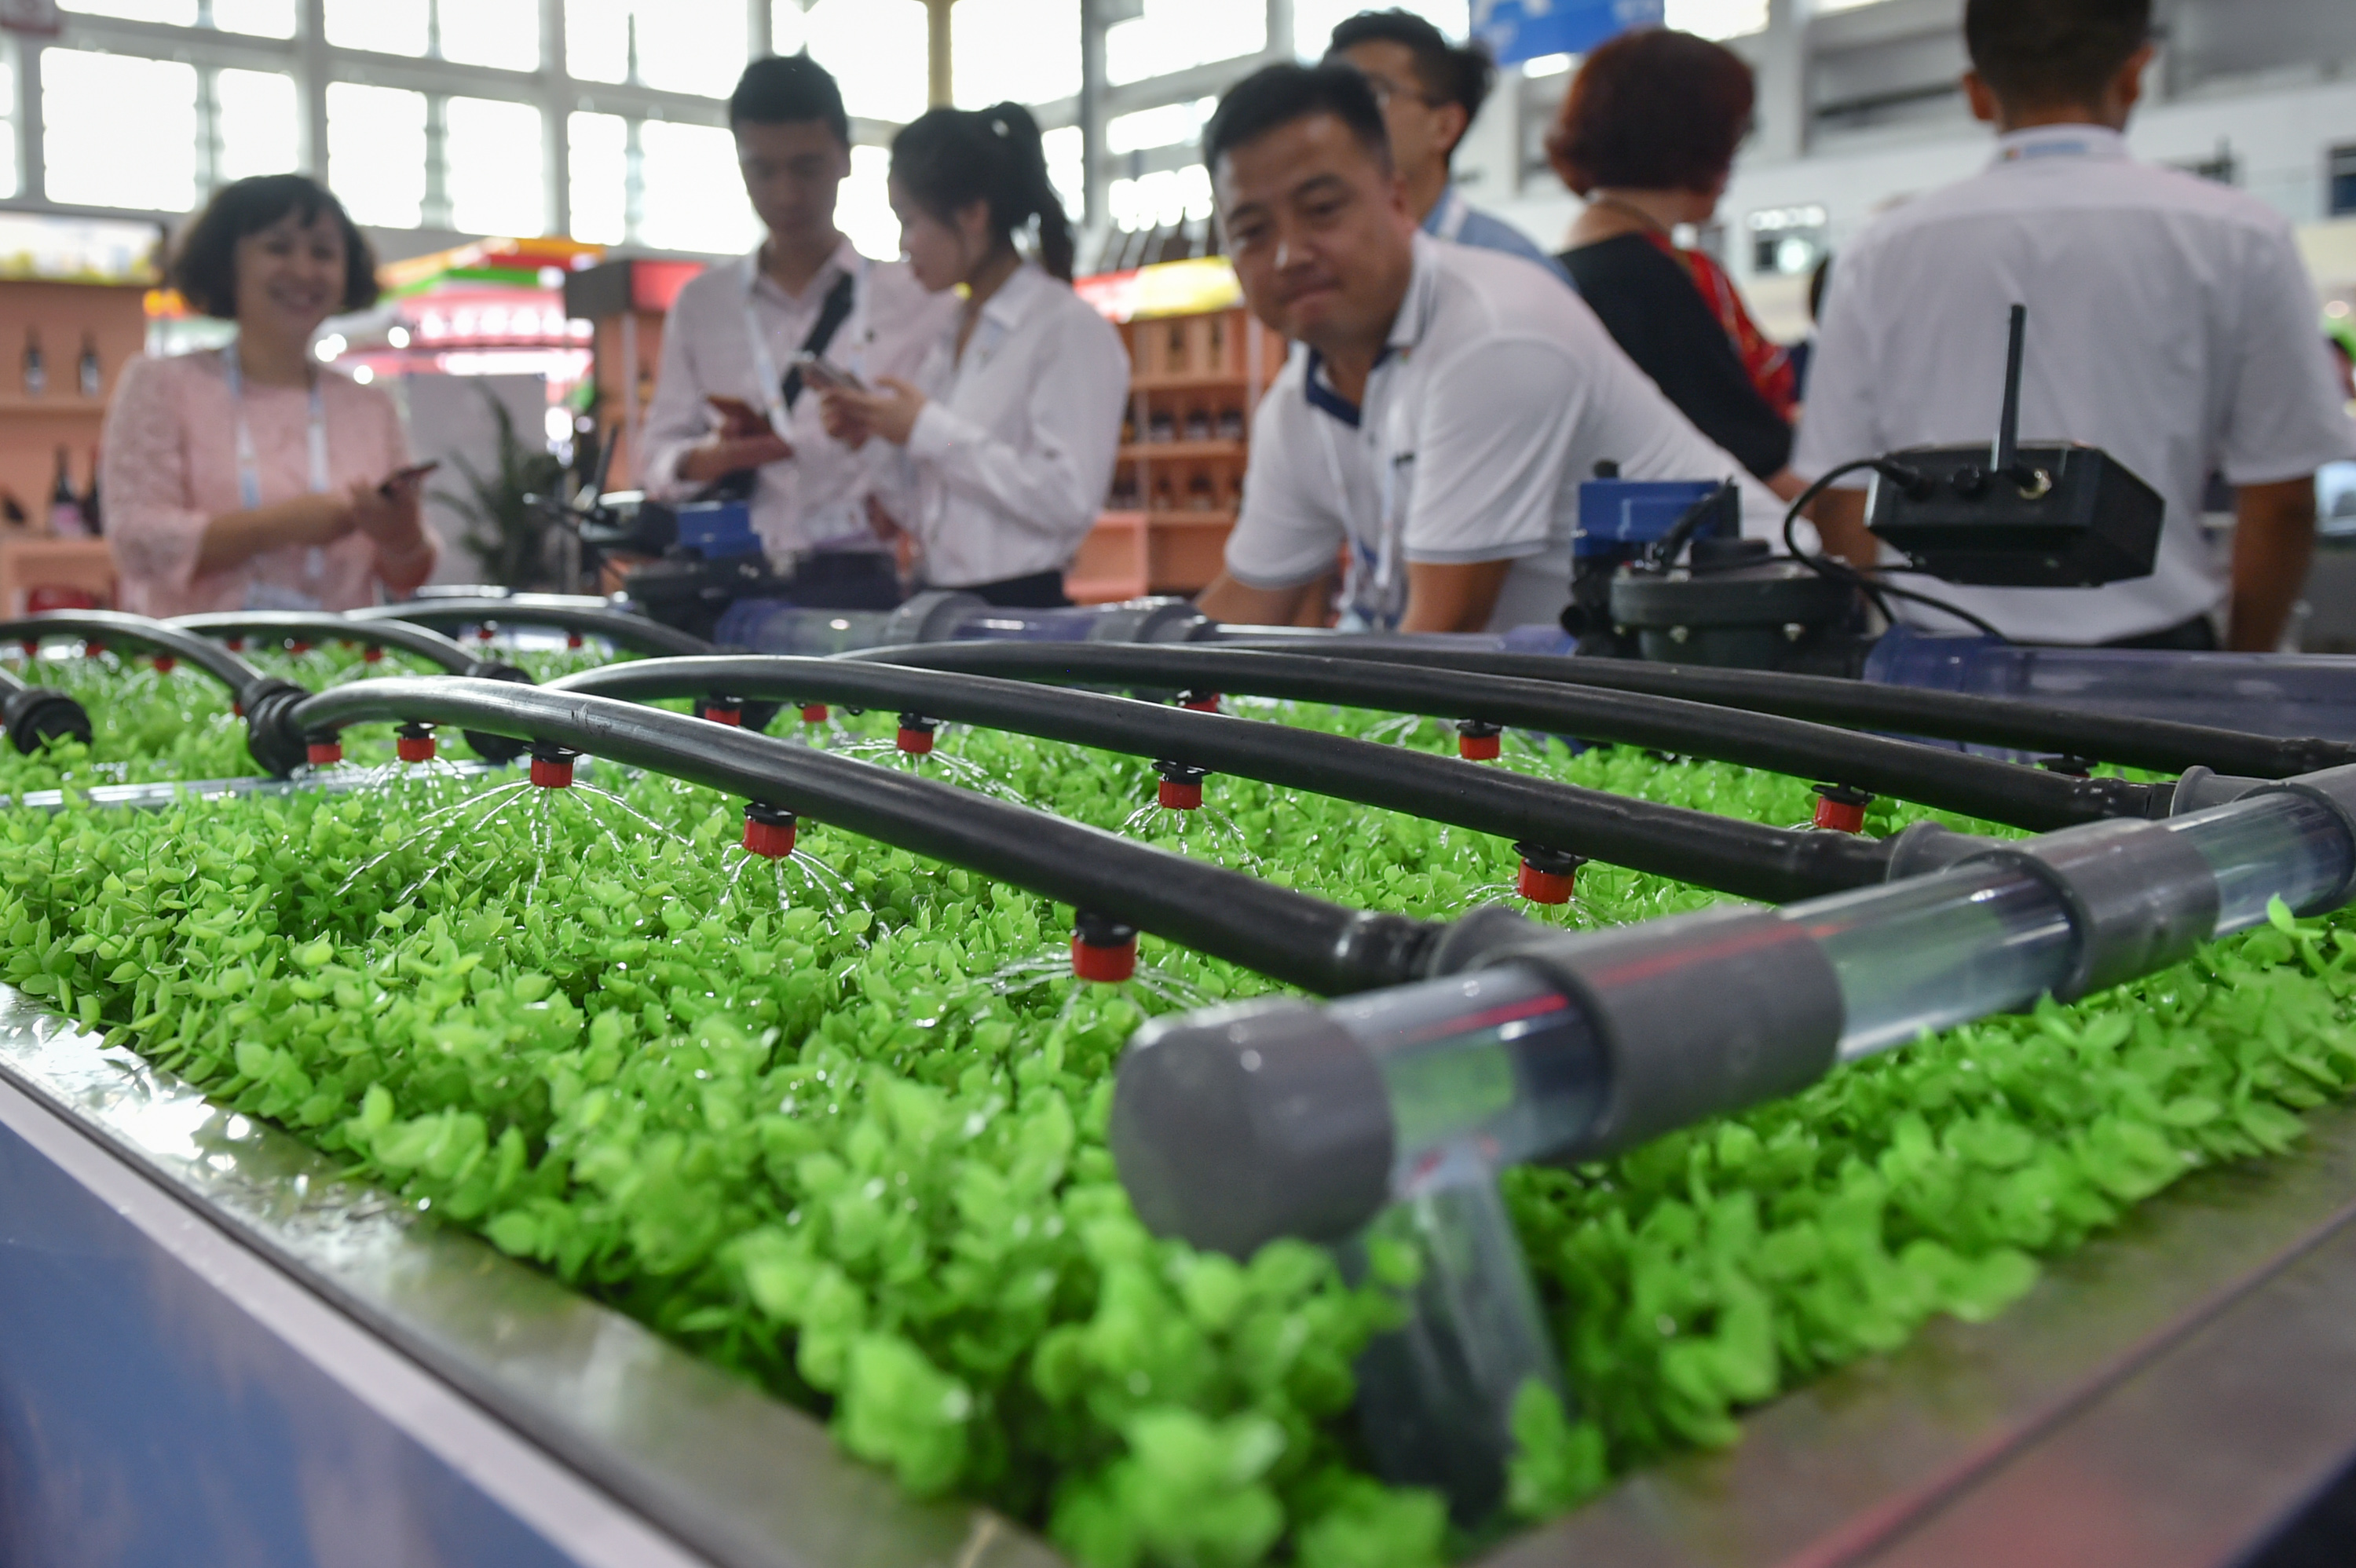 Agreements signed at China-Arab States expo to boost agri-technology transfer